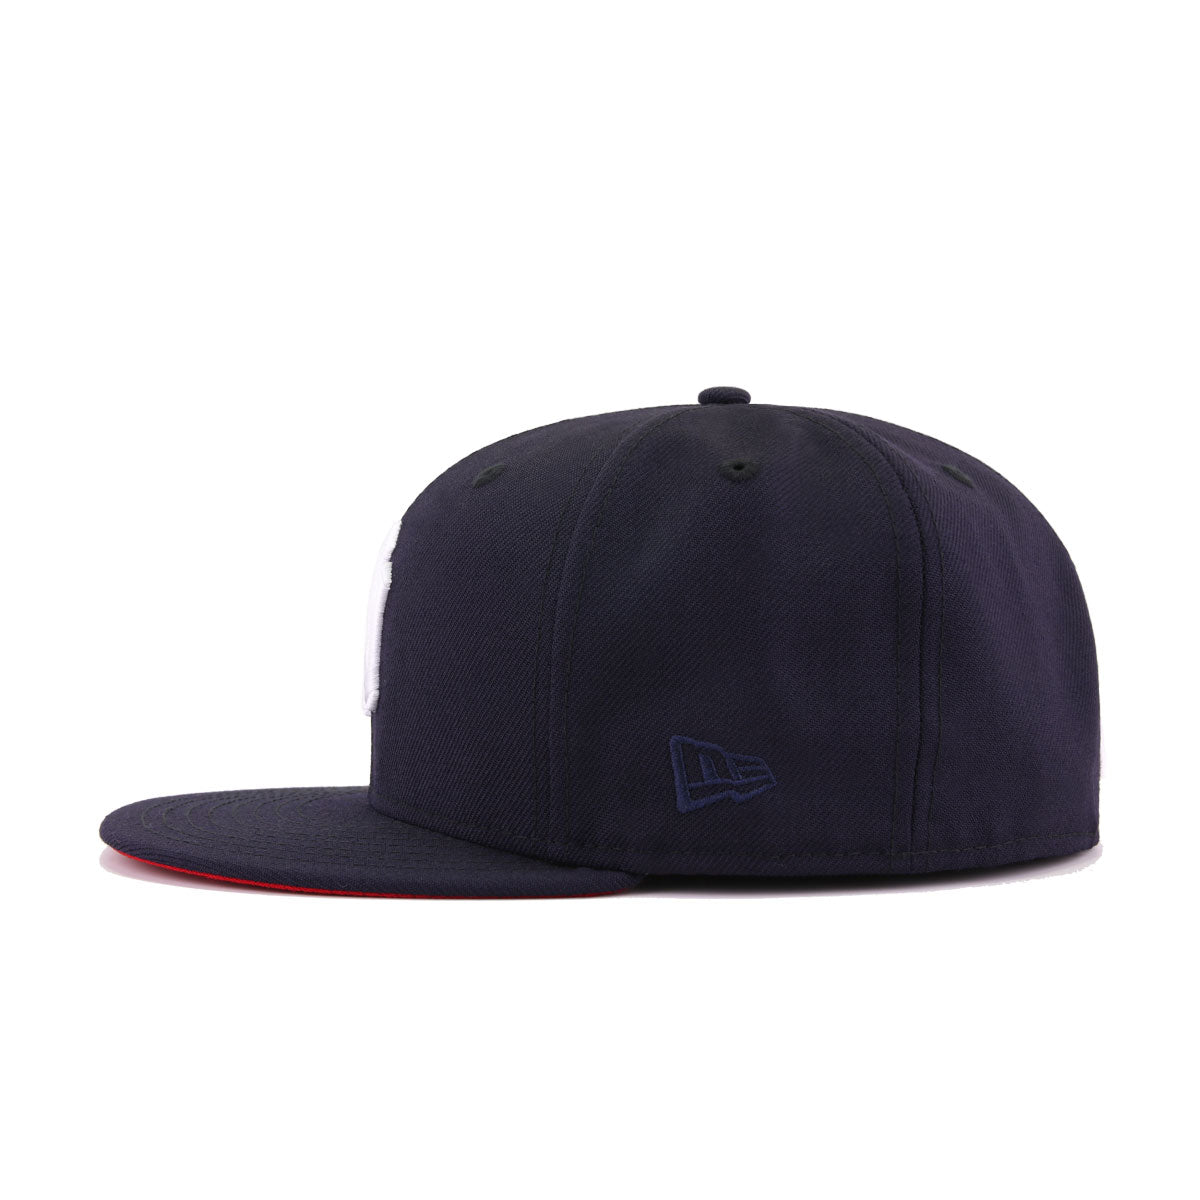 New York Yankees Navy Red Bottom New Era 59Fifty Fitted